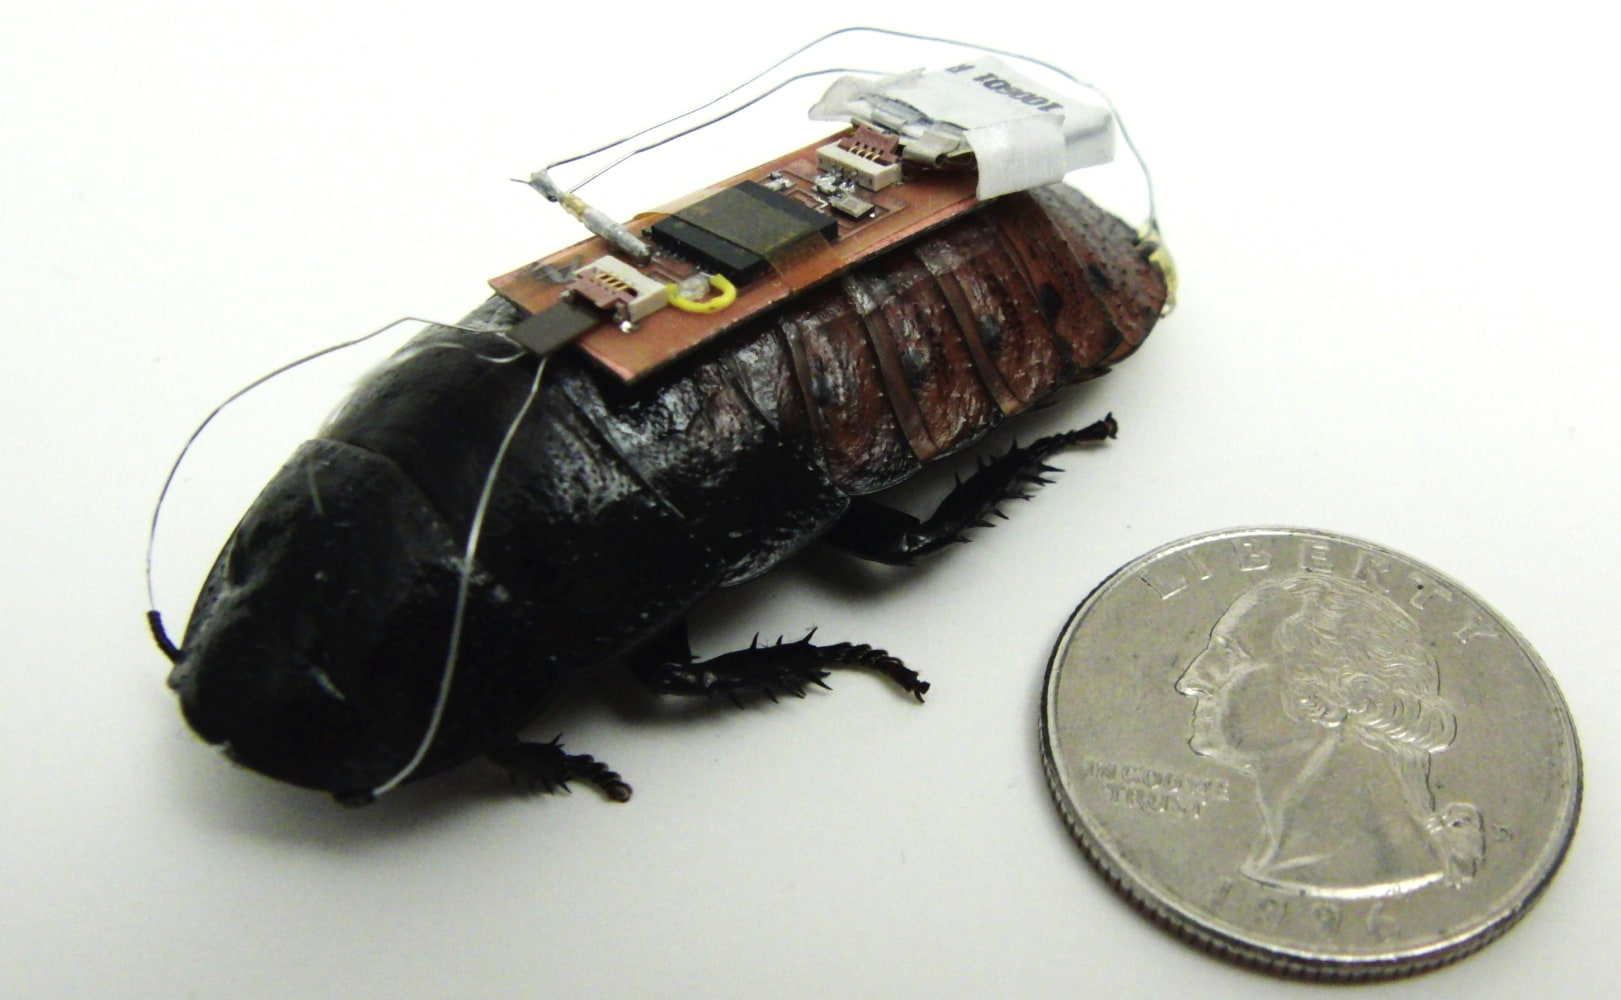 Don't panic! These cyborg roaches are trained for emergencies